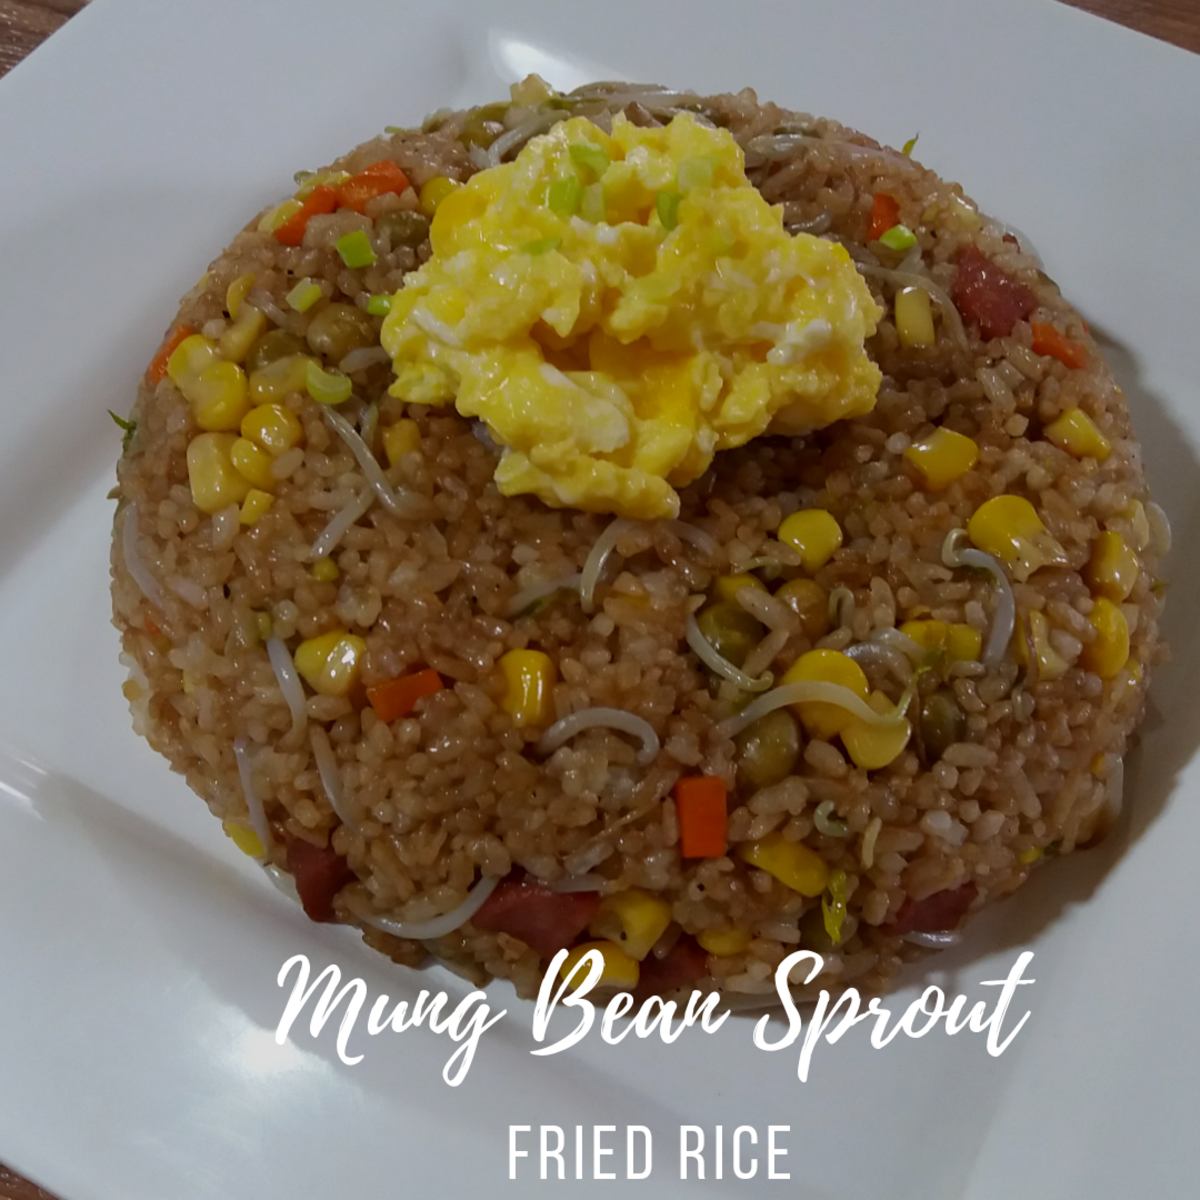 Fried rice with mung bean sprouts